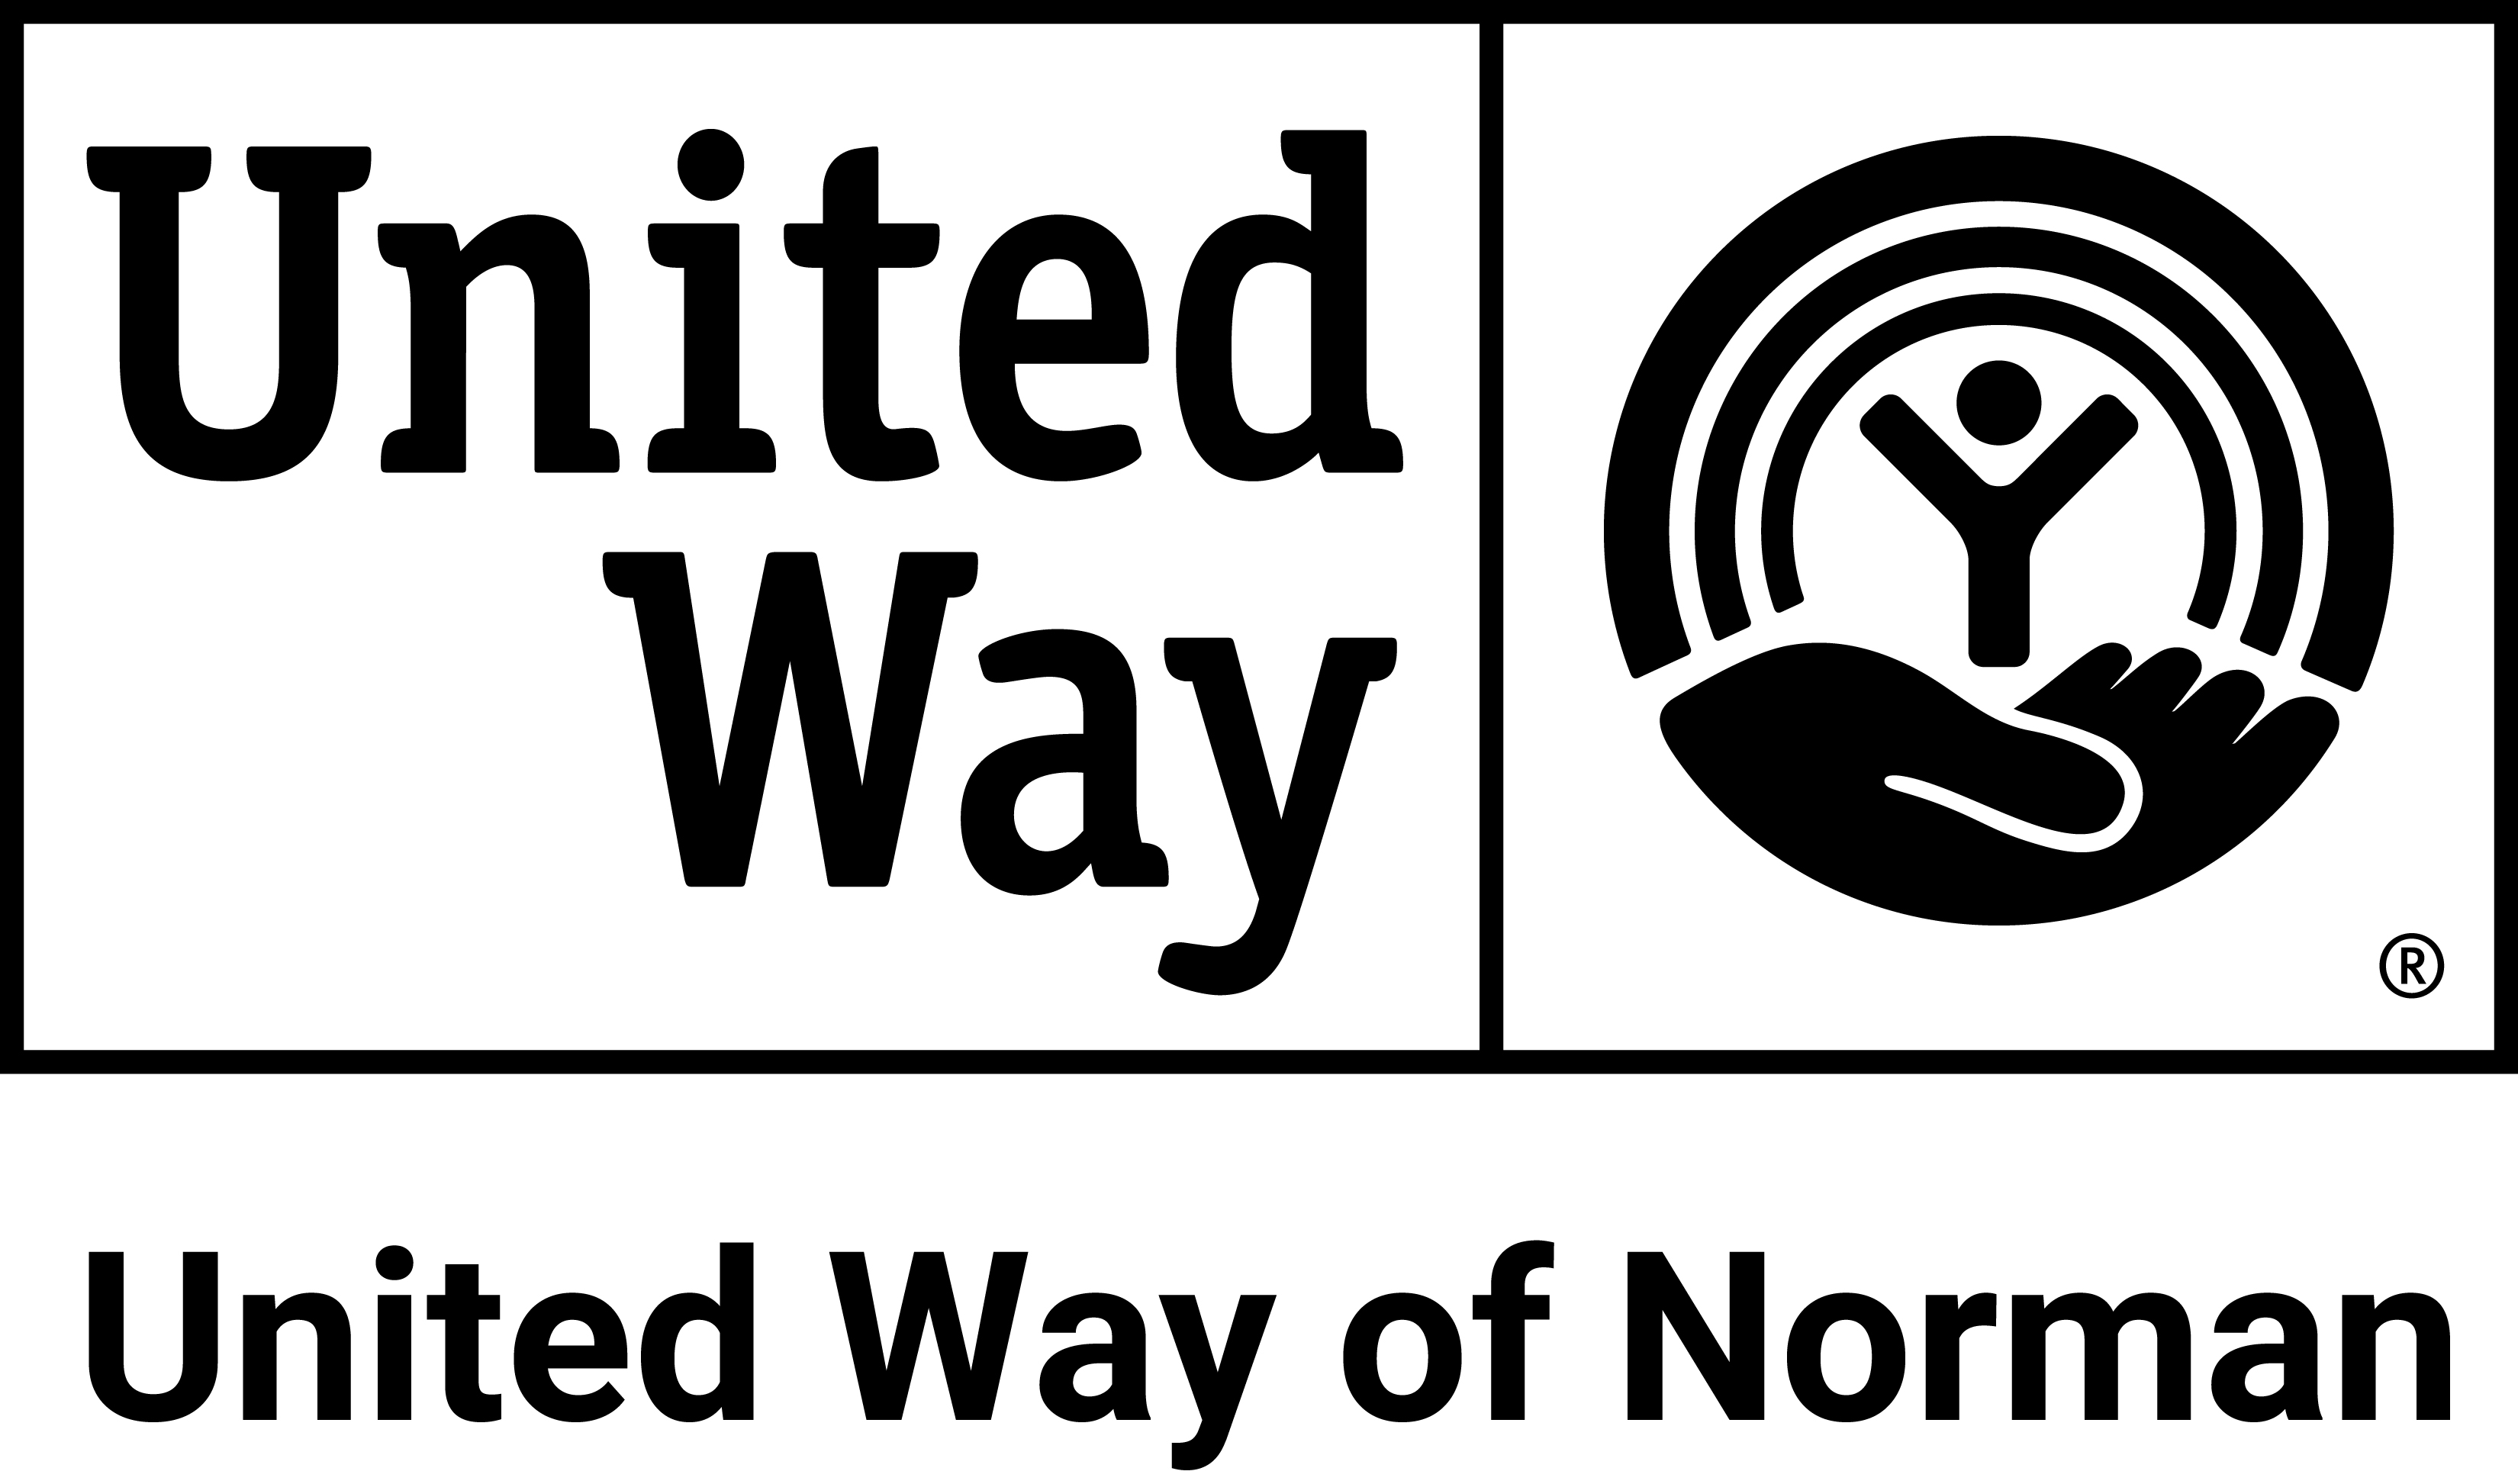 United Way of Norman logo black